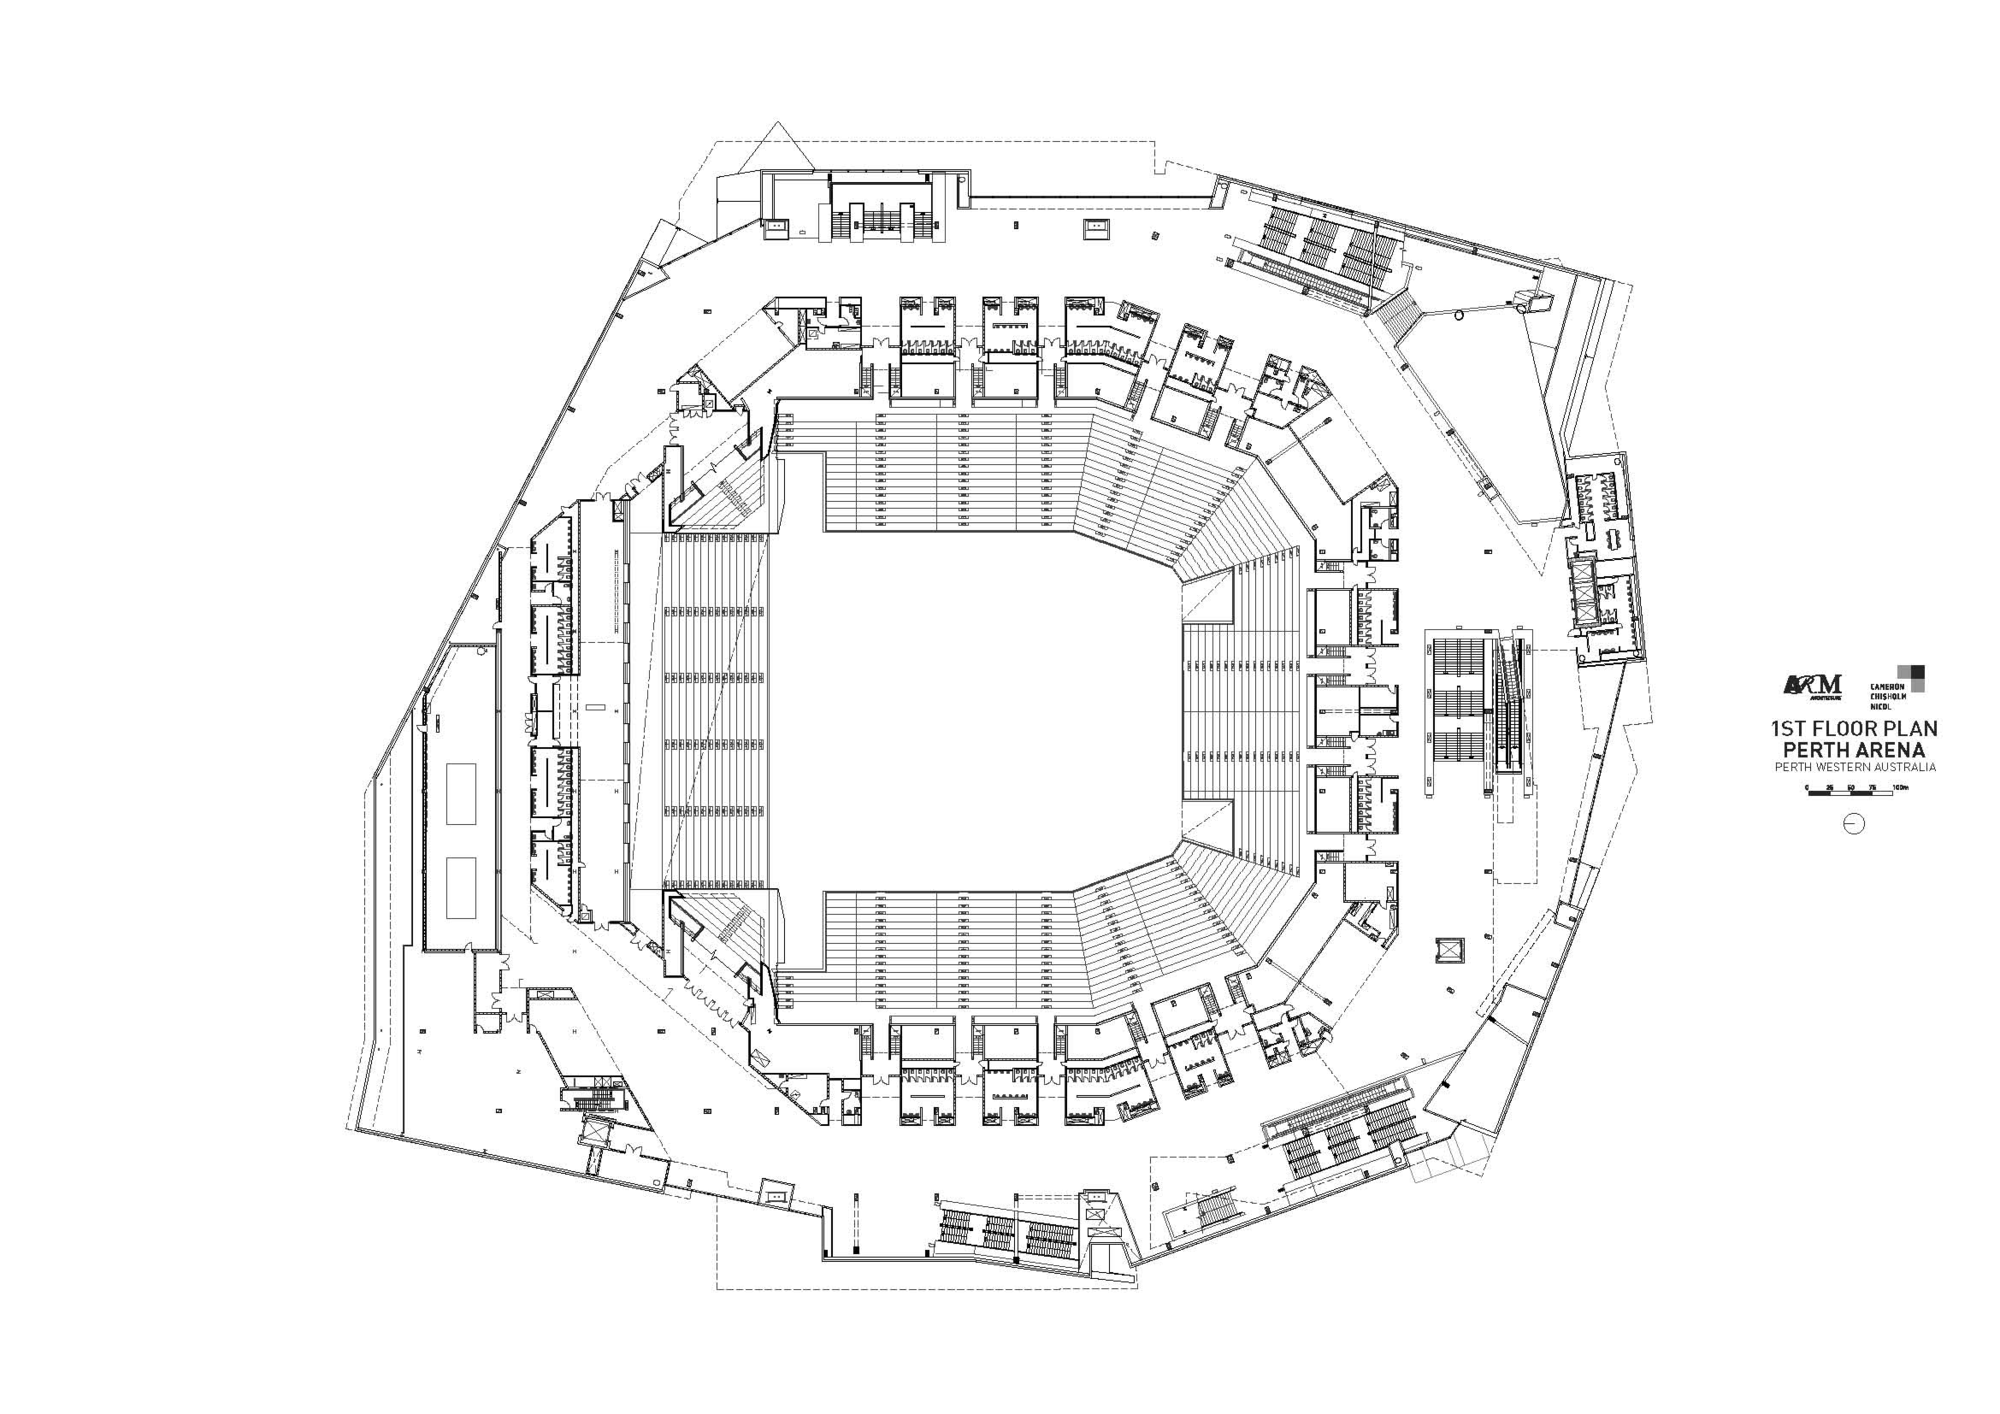 28 arena floor plan the odd competition to roof the verona arena floor plan architecture photography perth arena arm architecture